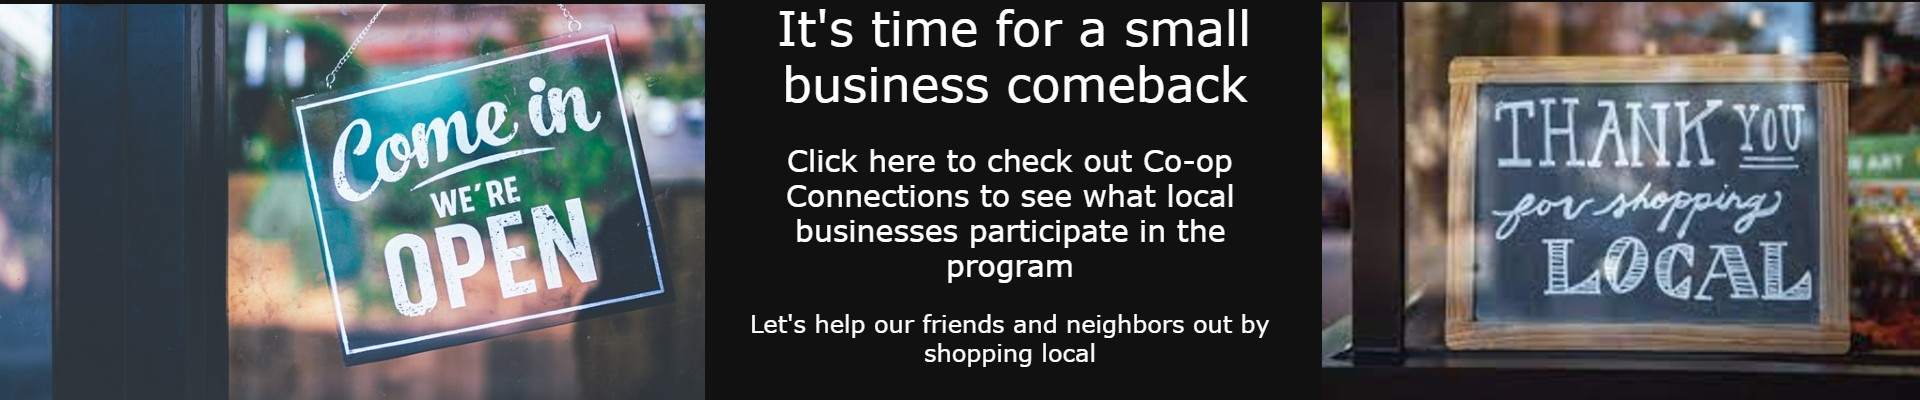 Small Business Comeback